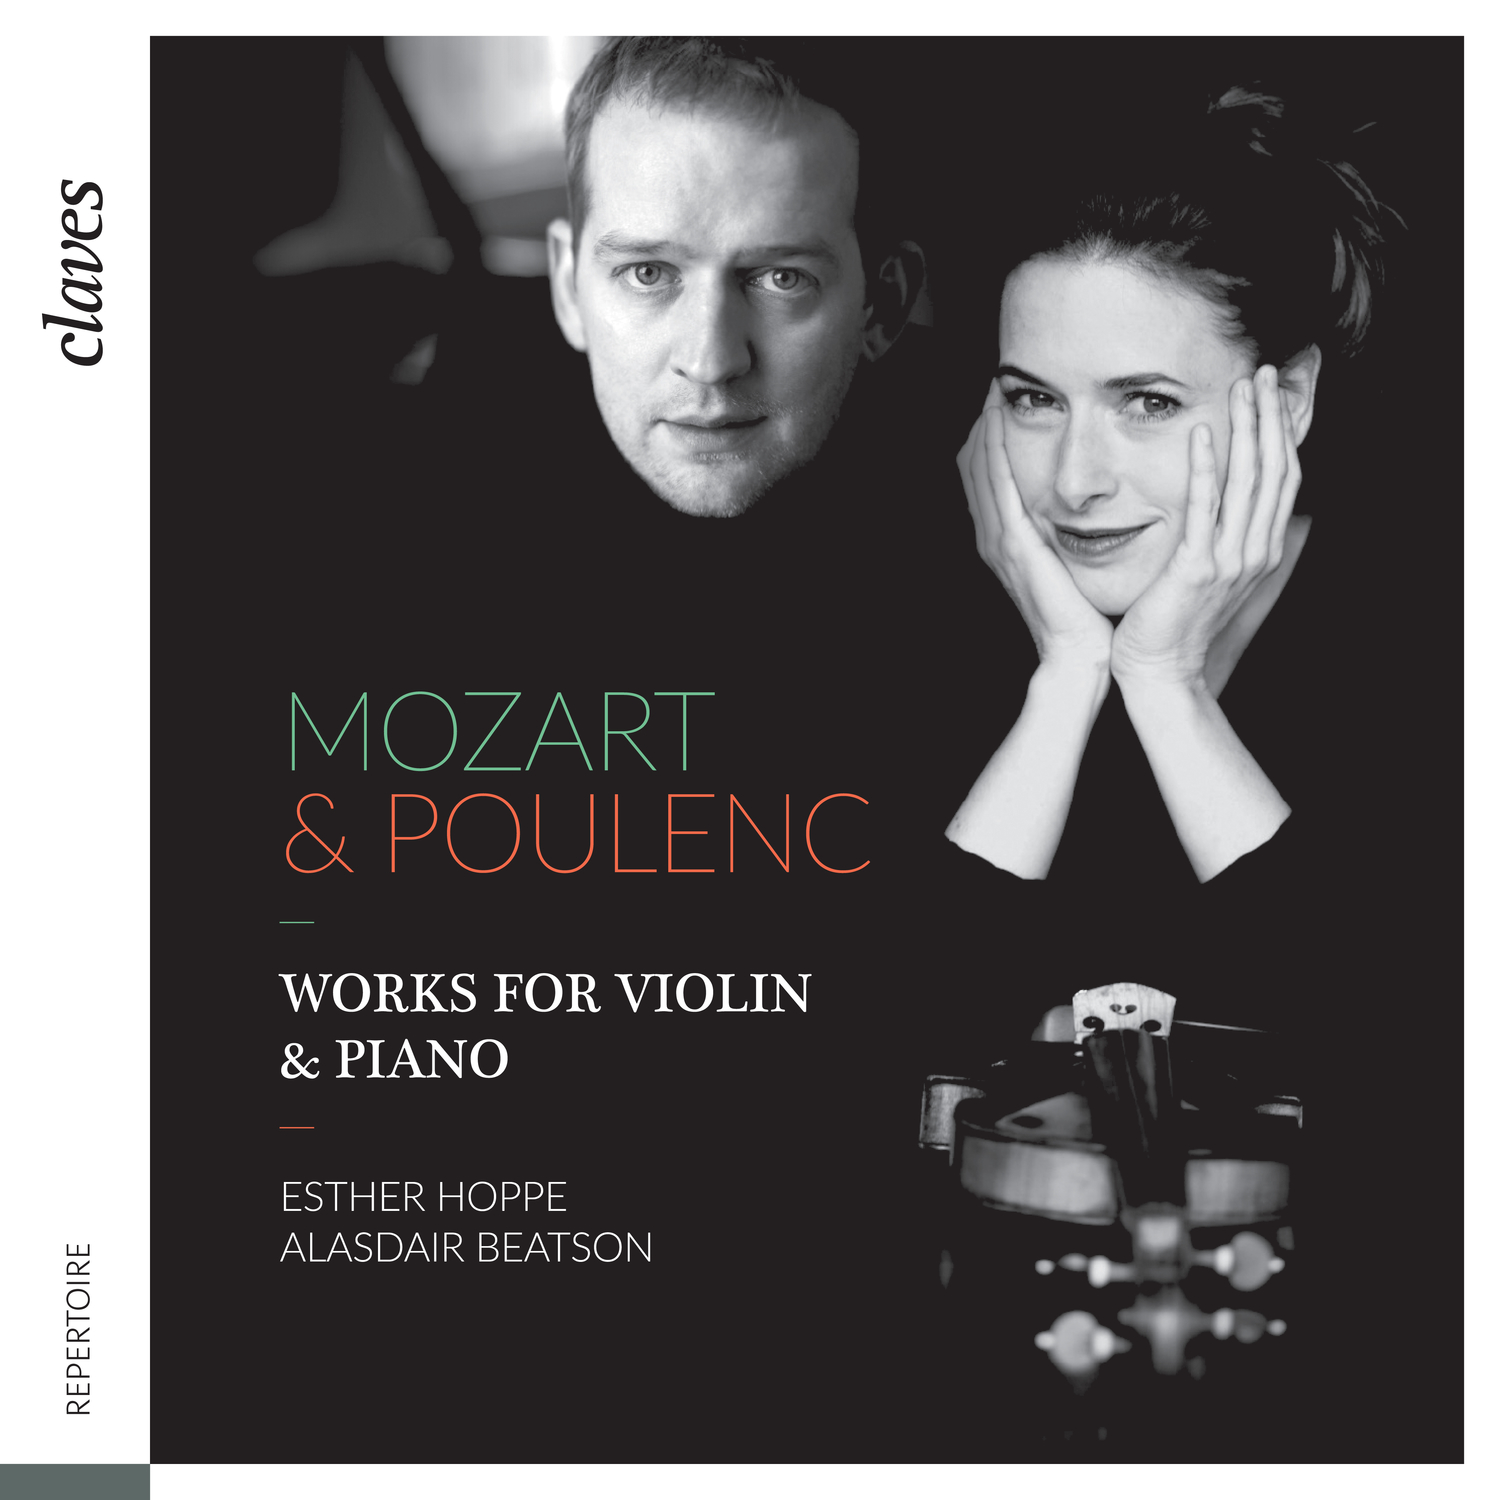 cover hoppe beatson claves mozart